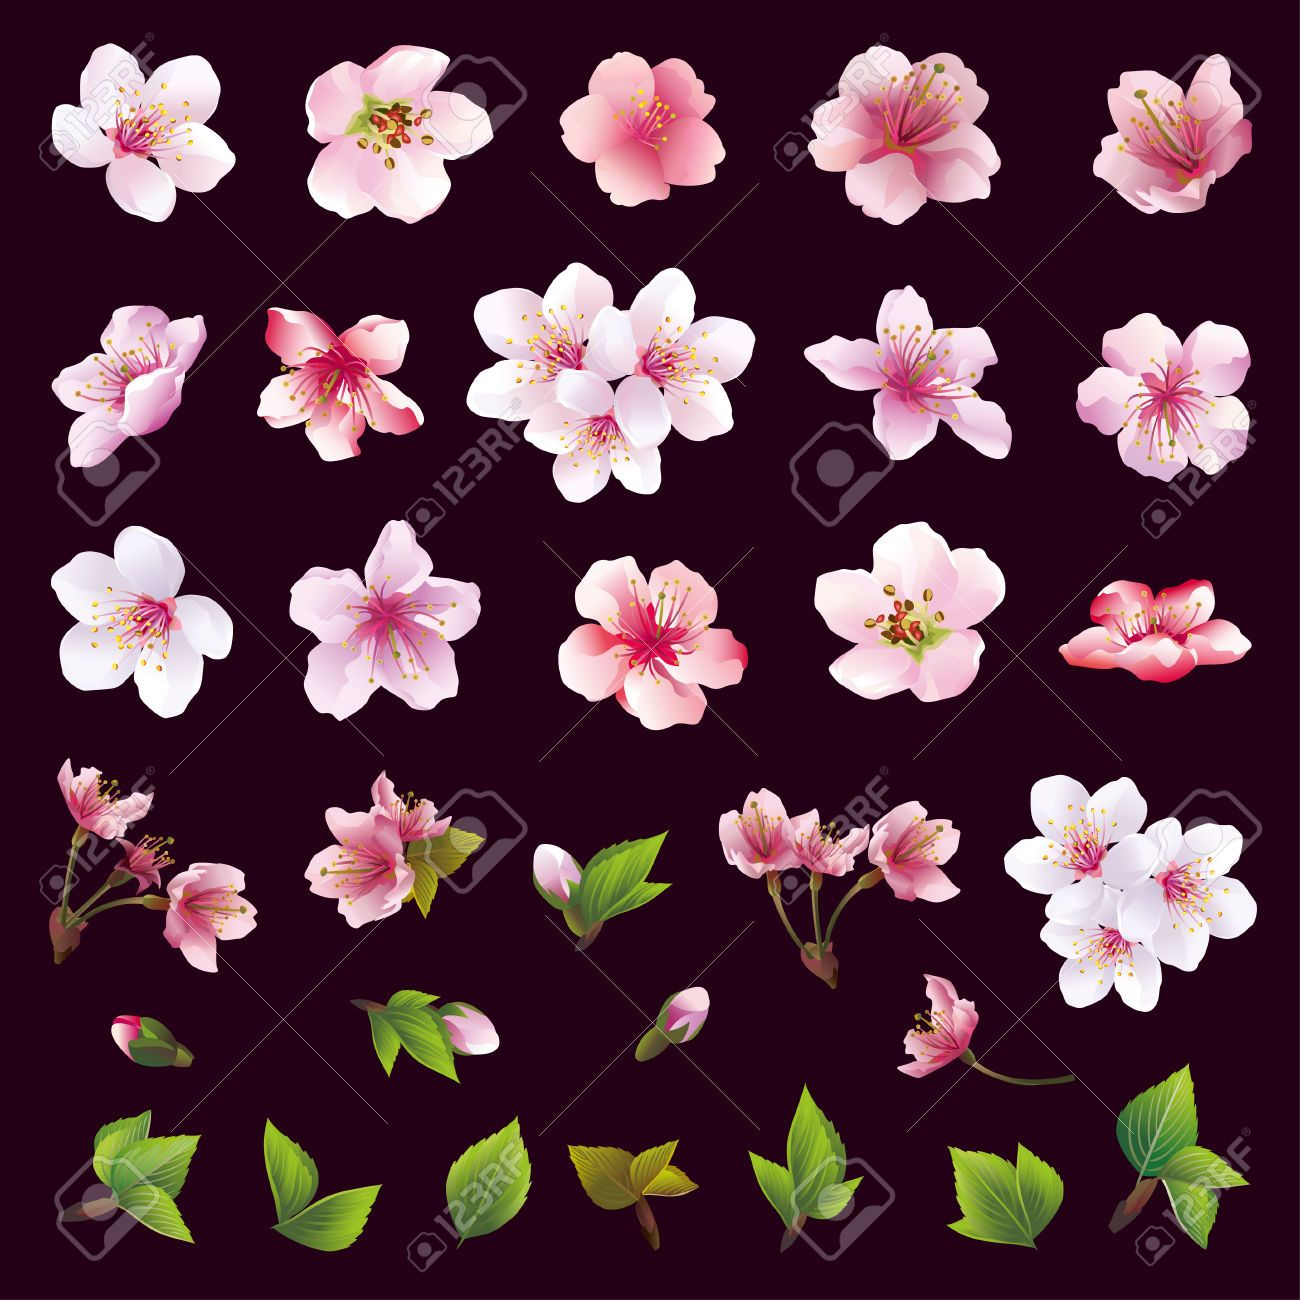 40377997 Big Set Of Different Beautiful Cherry Tree Flowers And Leaves Isolated On Black Background Cherry Blossom Art Flower Illustration Blossom Tree Tattoo